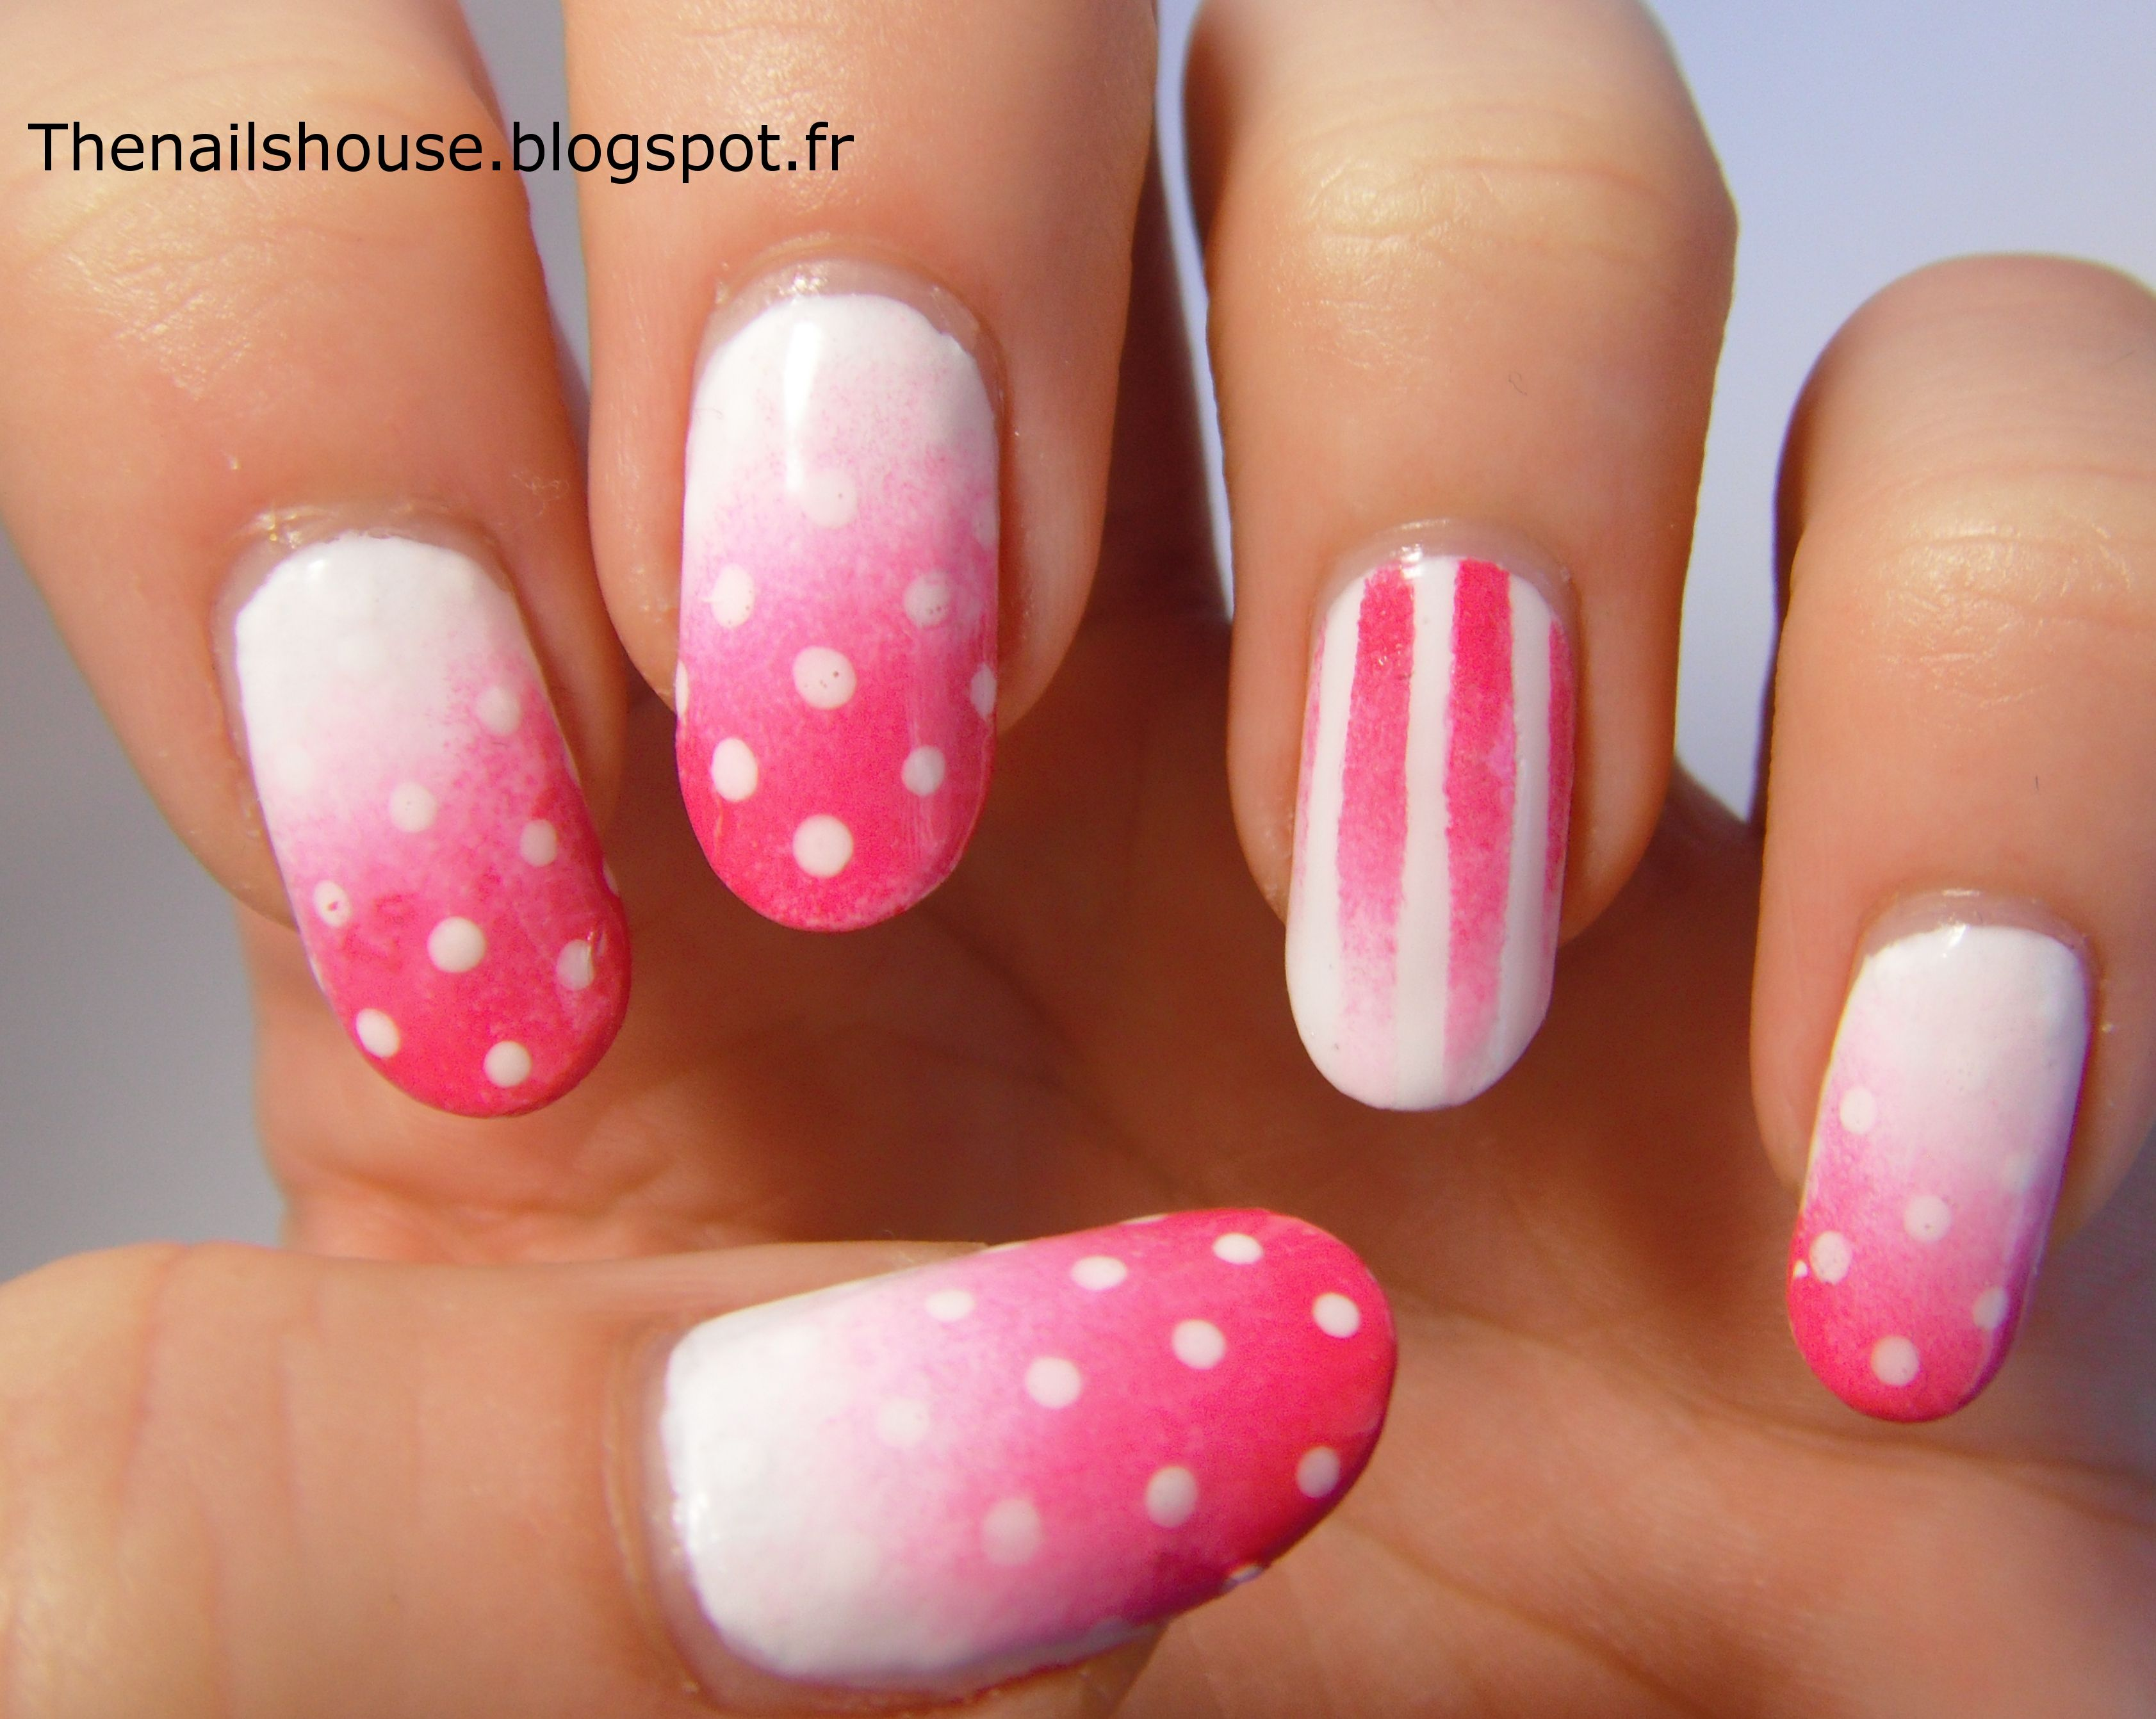 Pink & White, dots & stripes nail art !